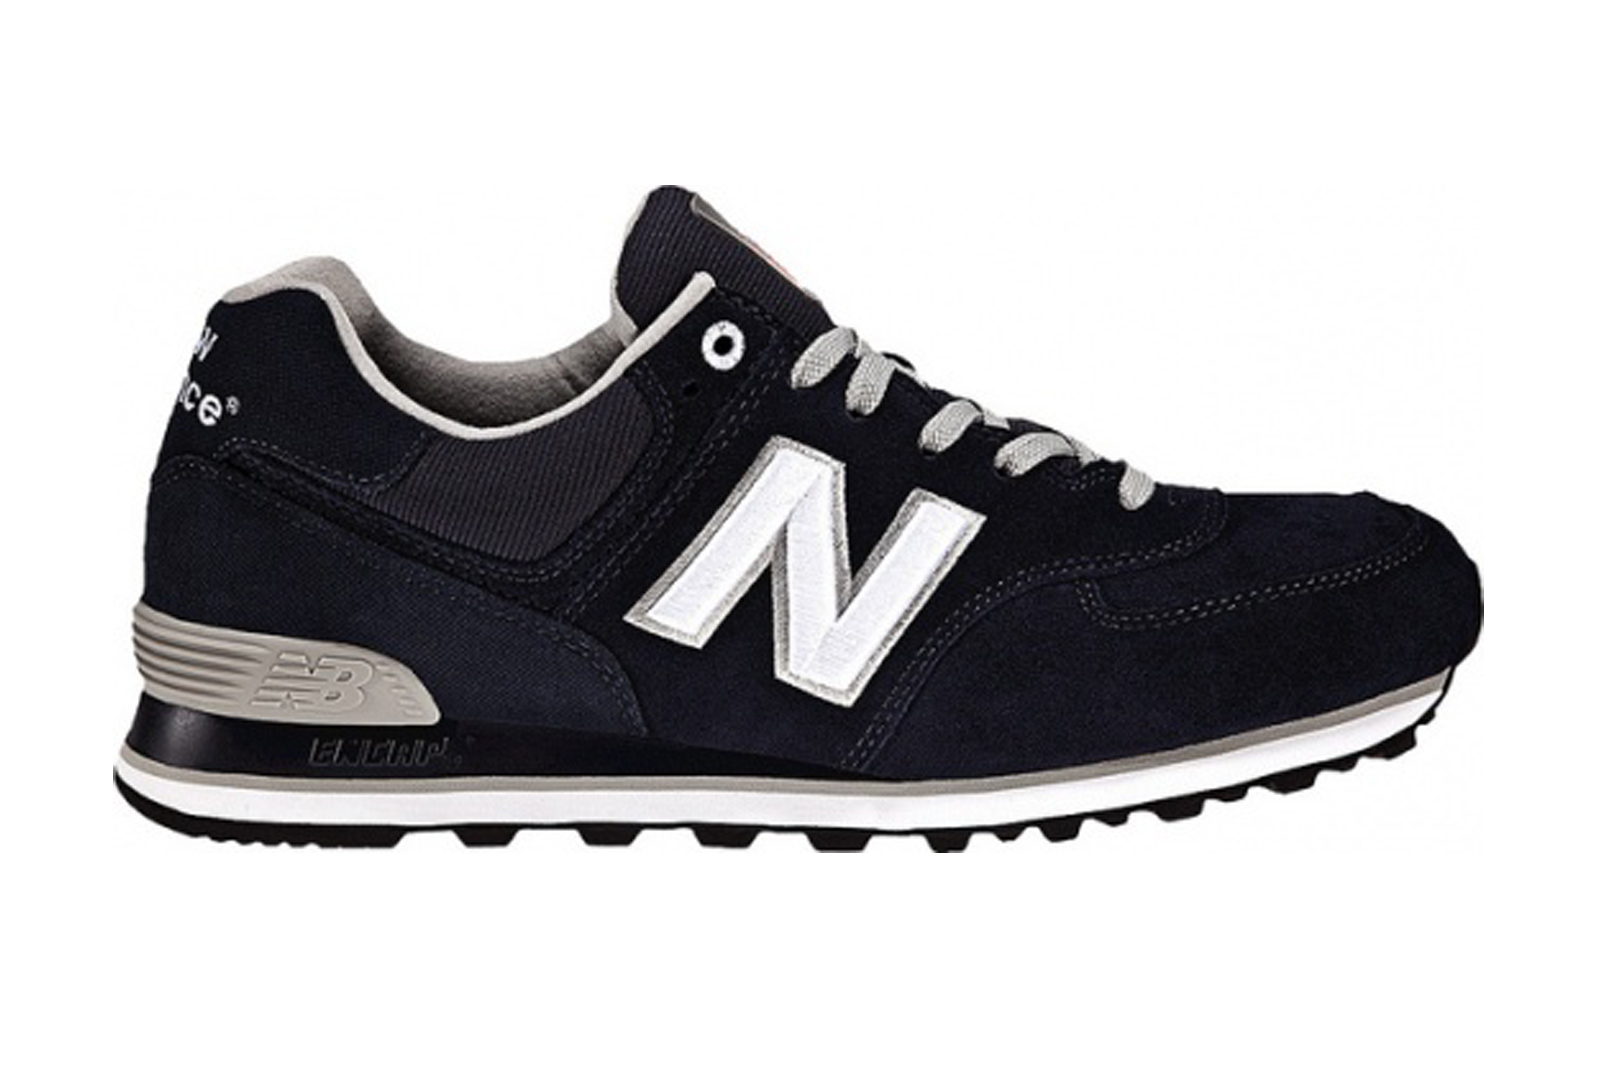 New Balance Crossover - Late Funker